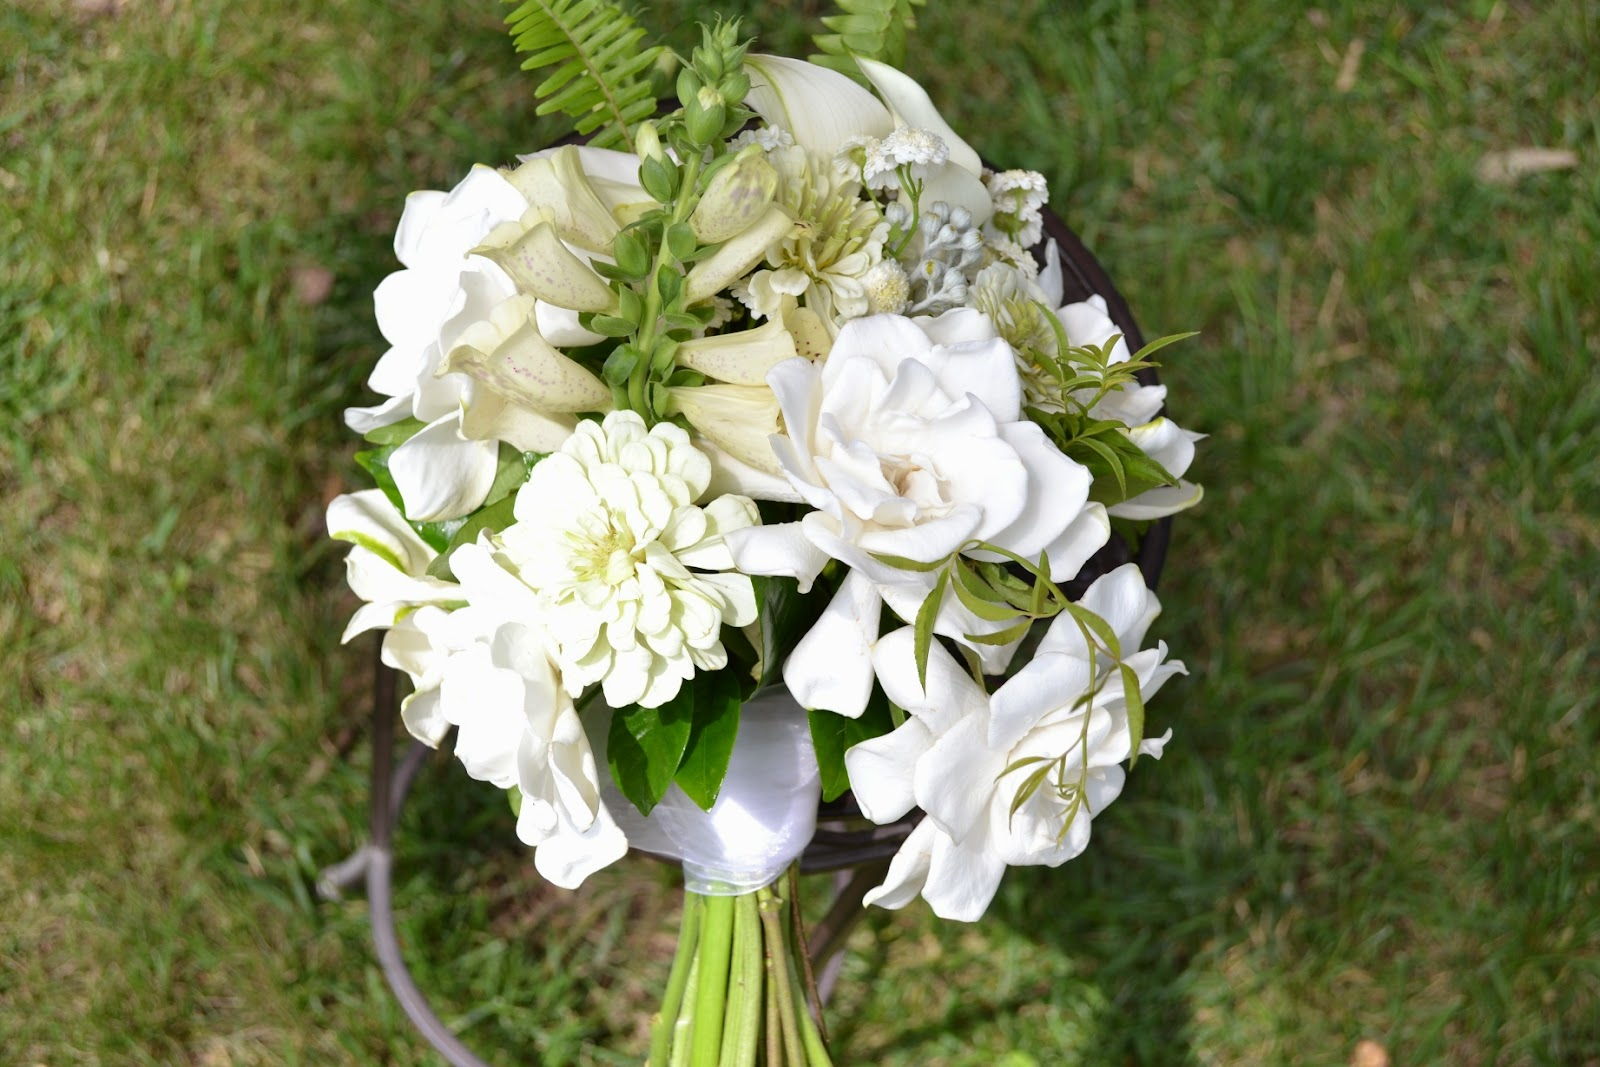 Wedding Flowers from Springwell: Gardenias for White Bouquets